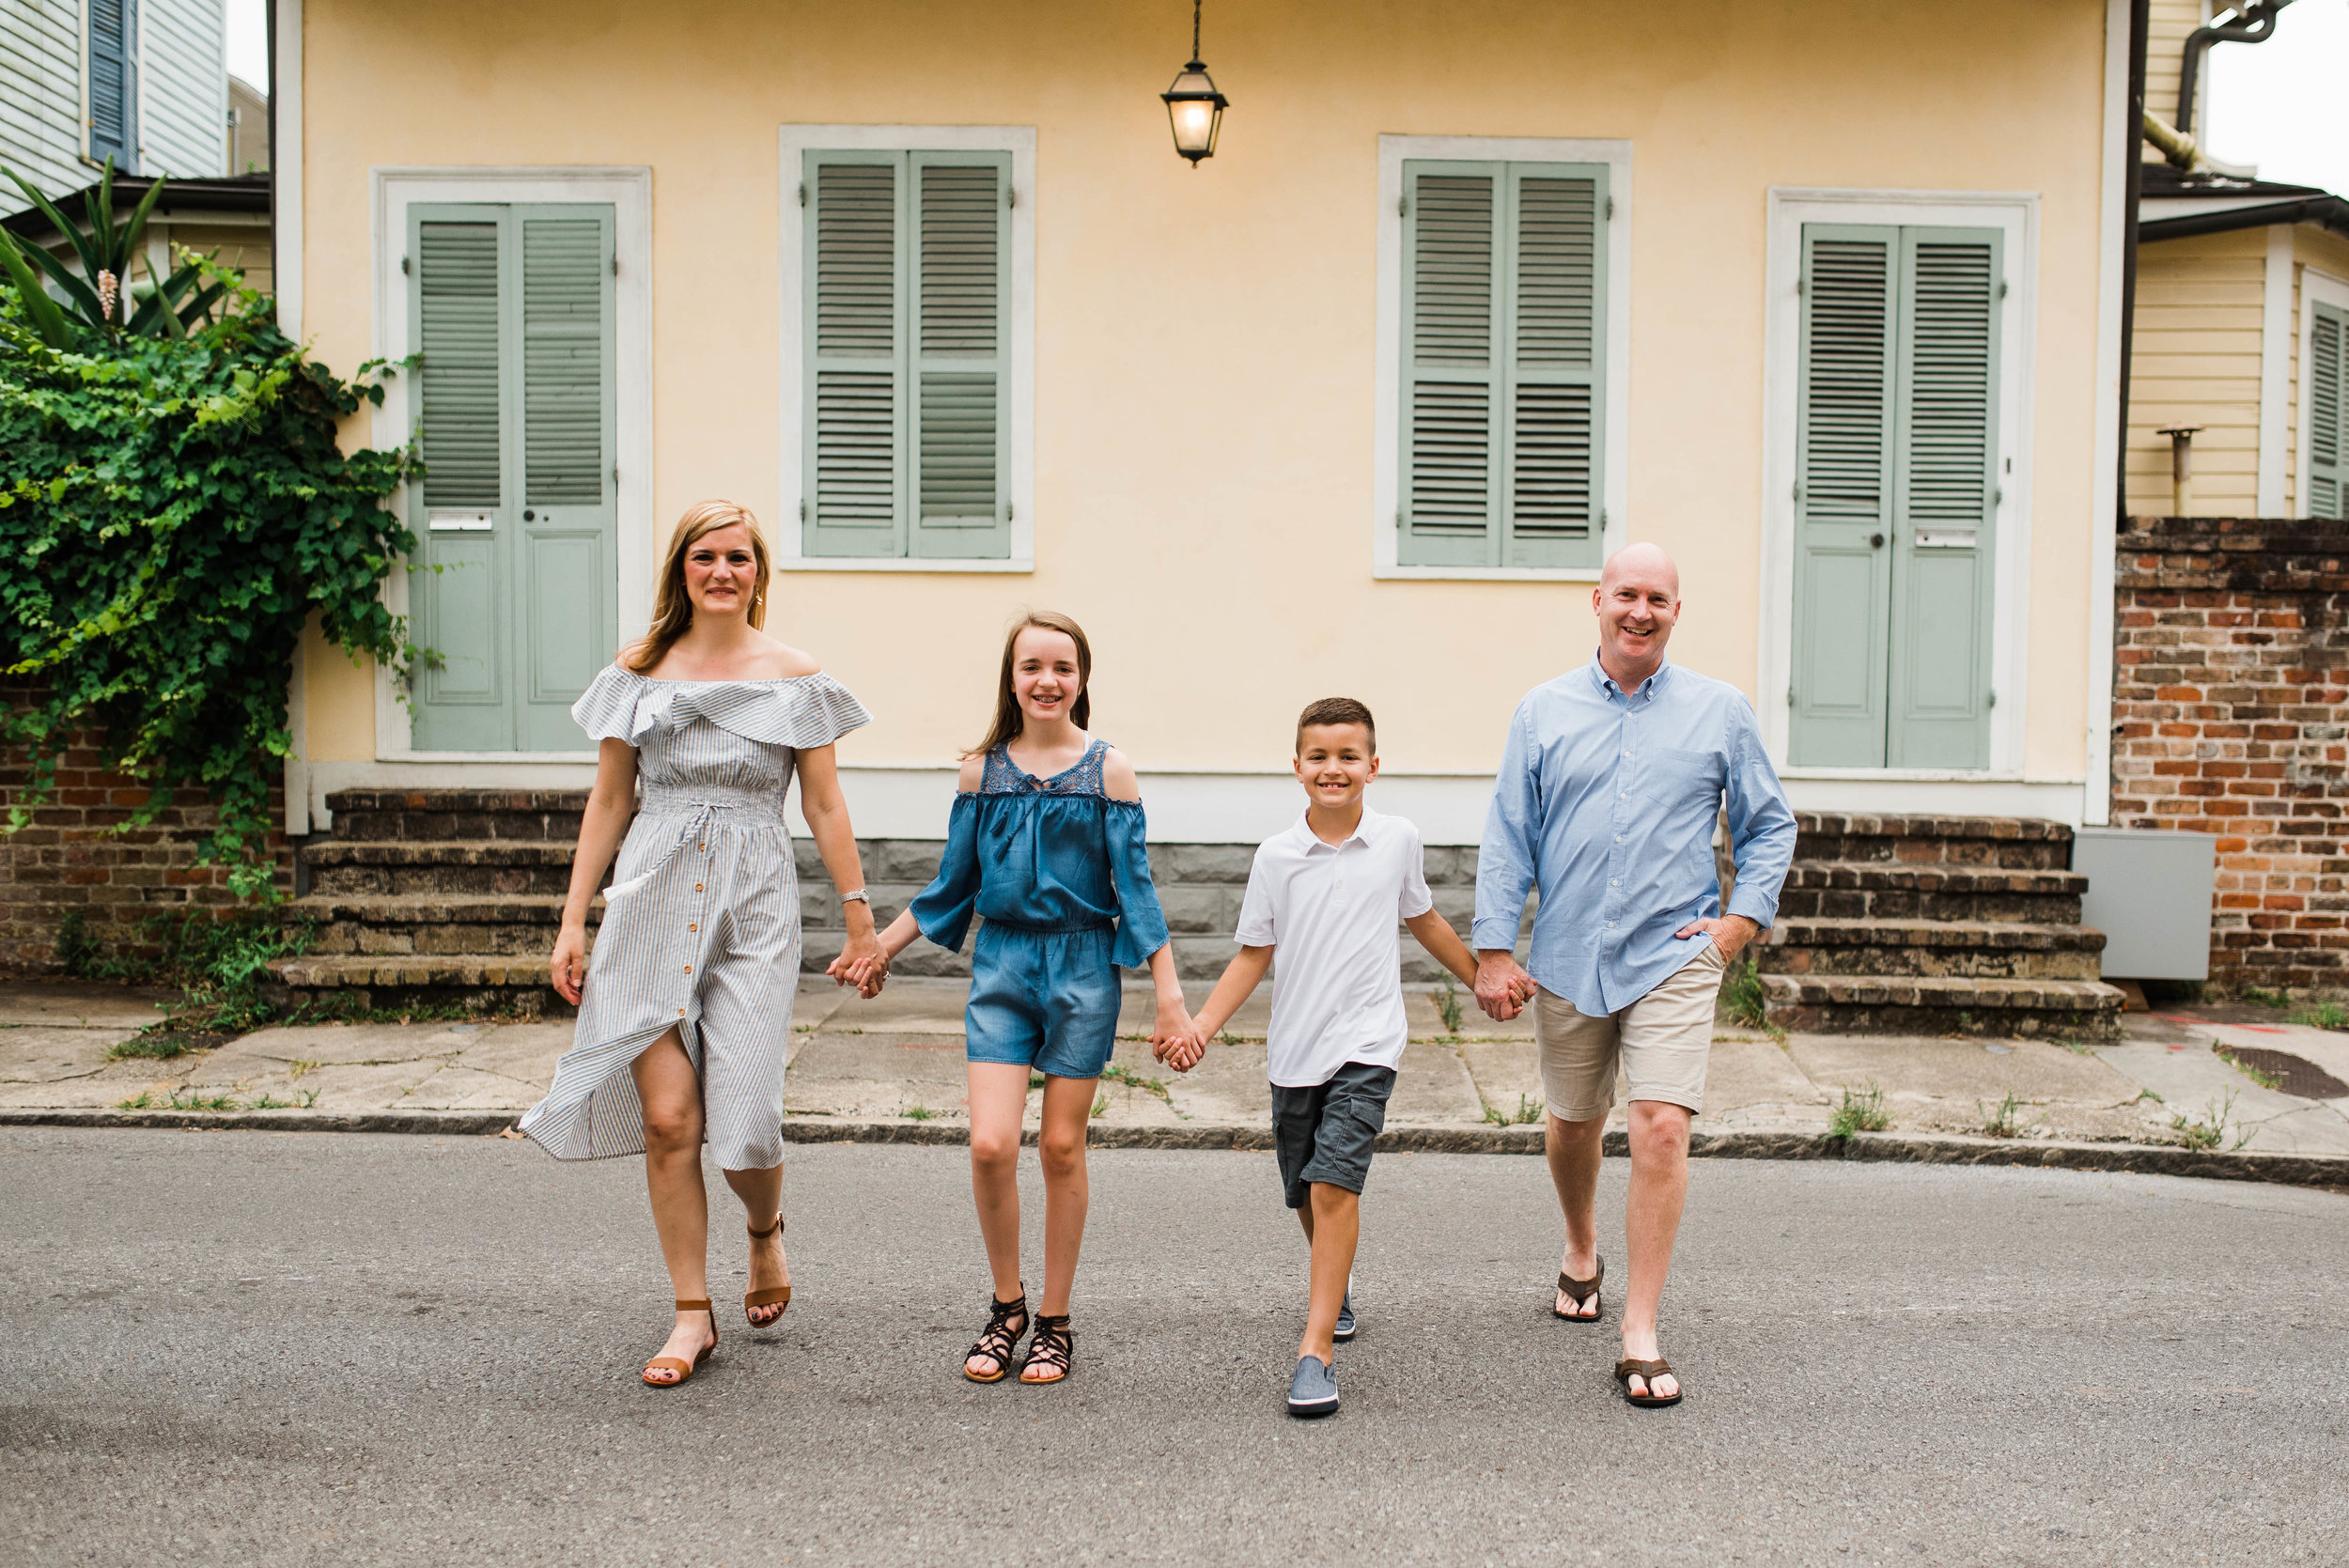 Conrad-Family-Photos-New-Orleans-French-Quarter_Gabby Chapin Photography_0073.jpg